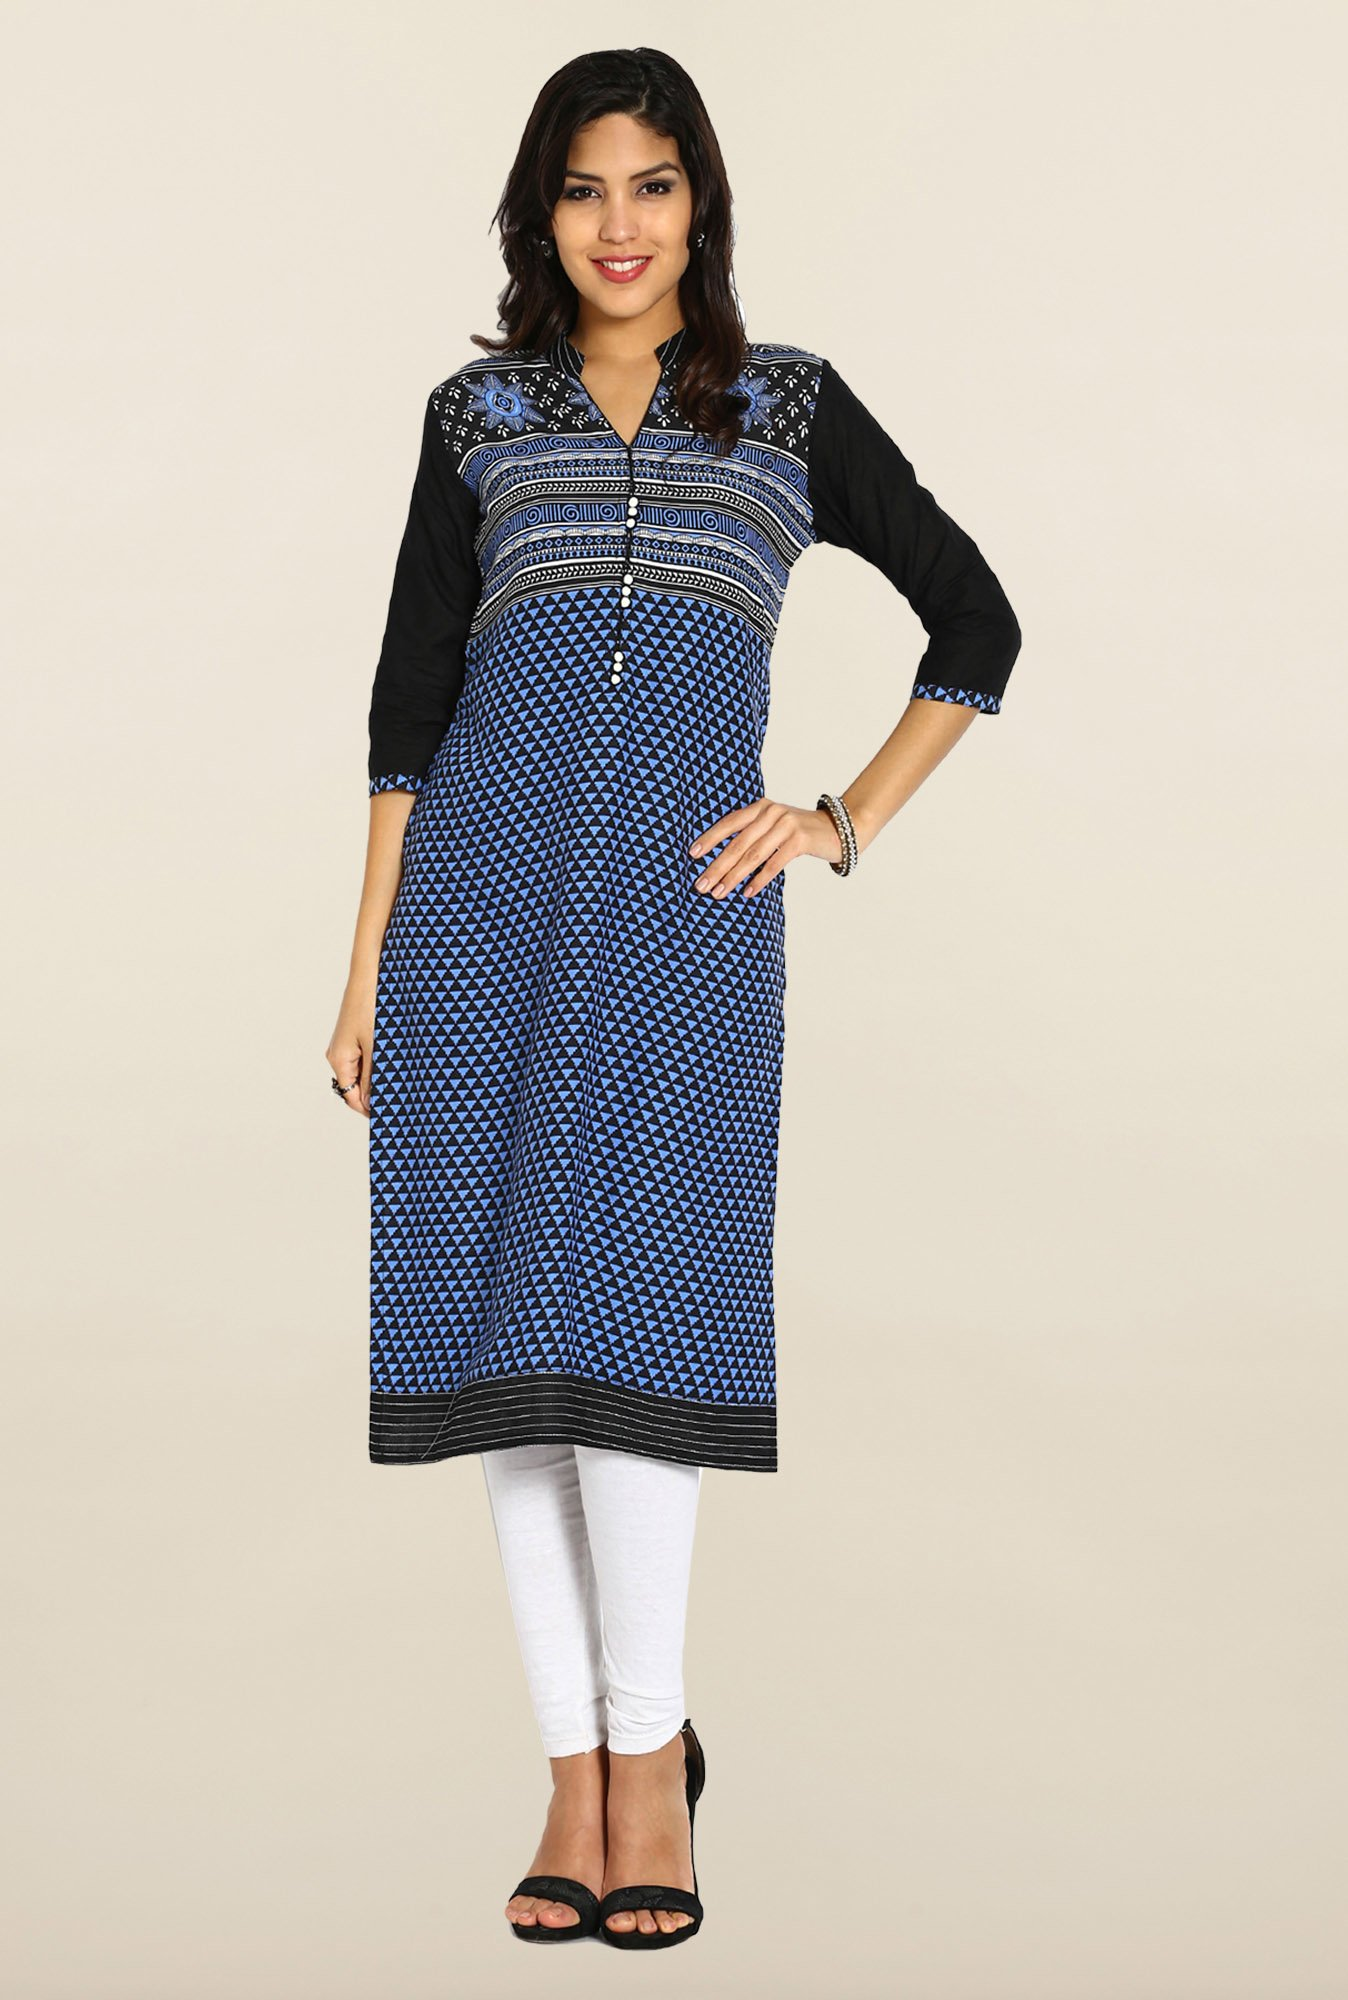 Soch Blue & Black Cotton Kurta